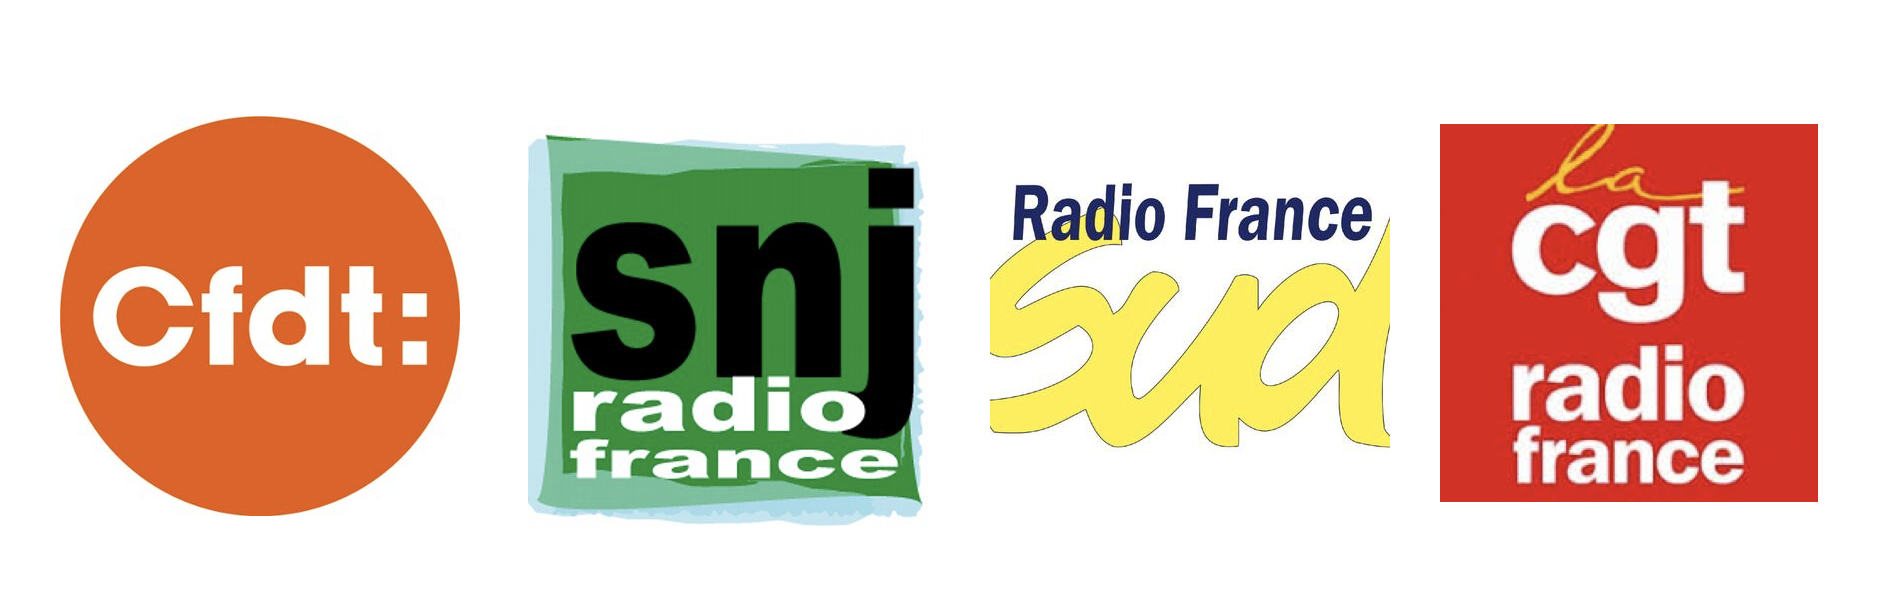 Radio France : les syndicats appellent à la grève